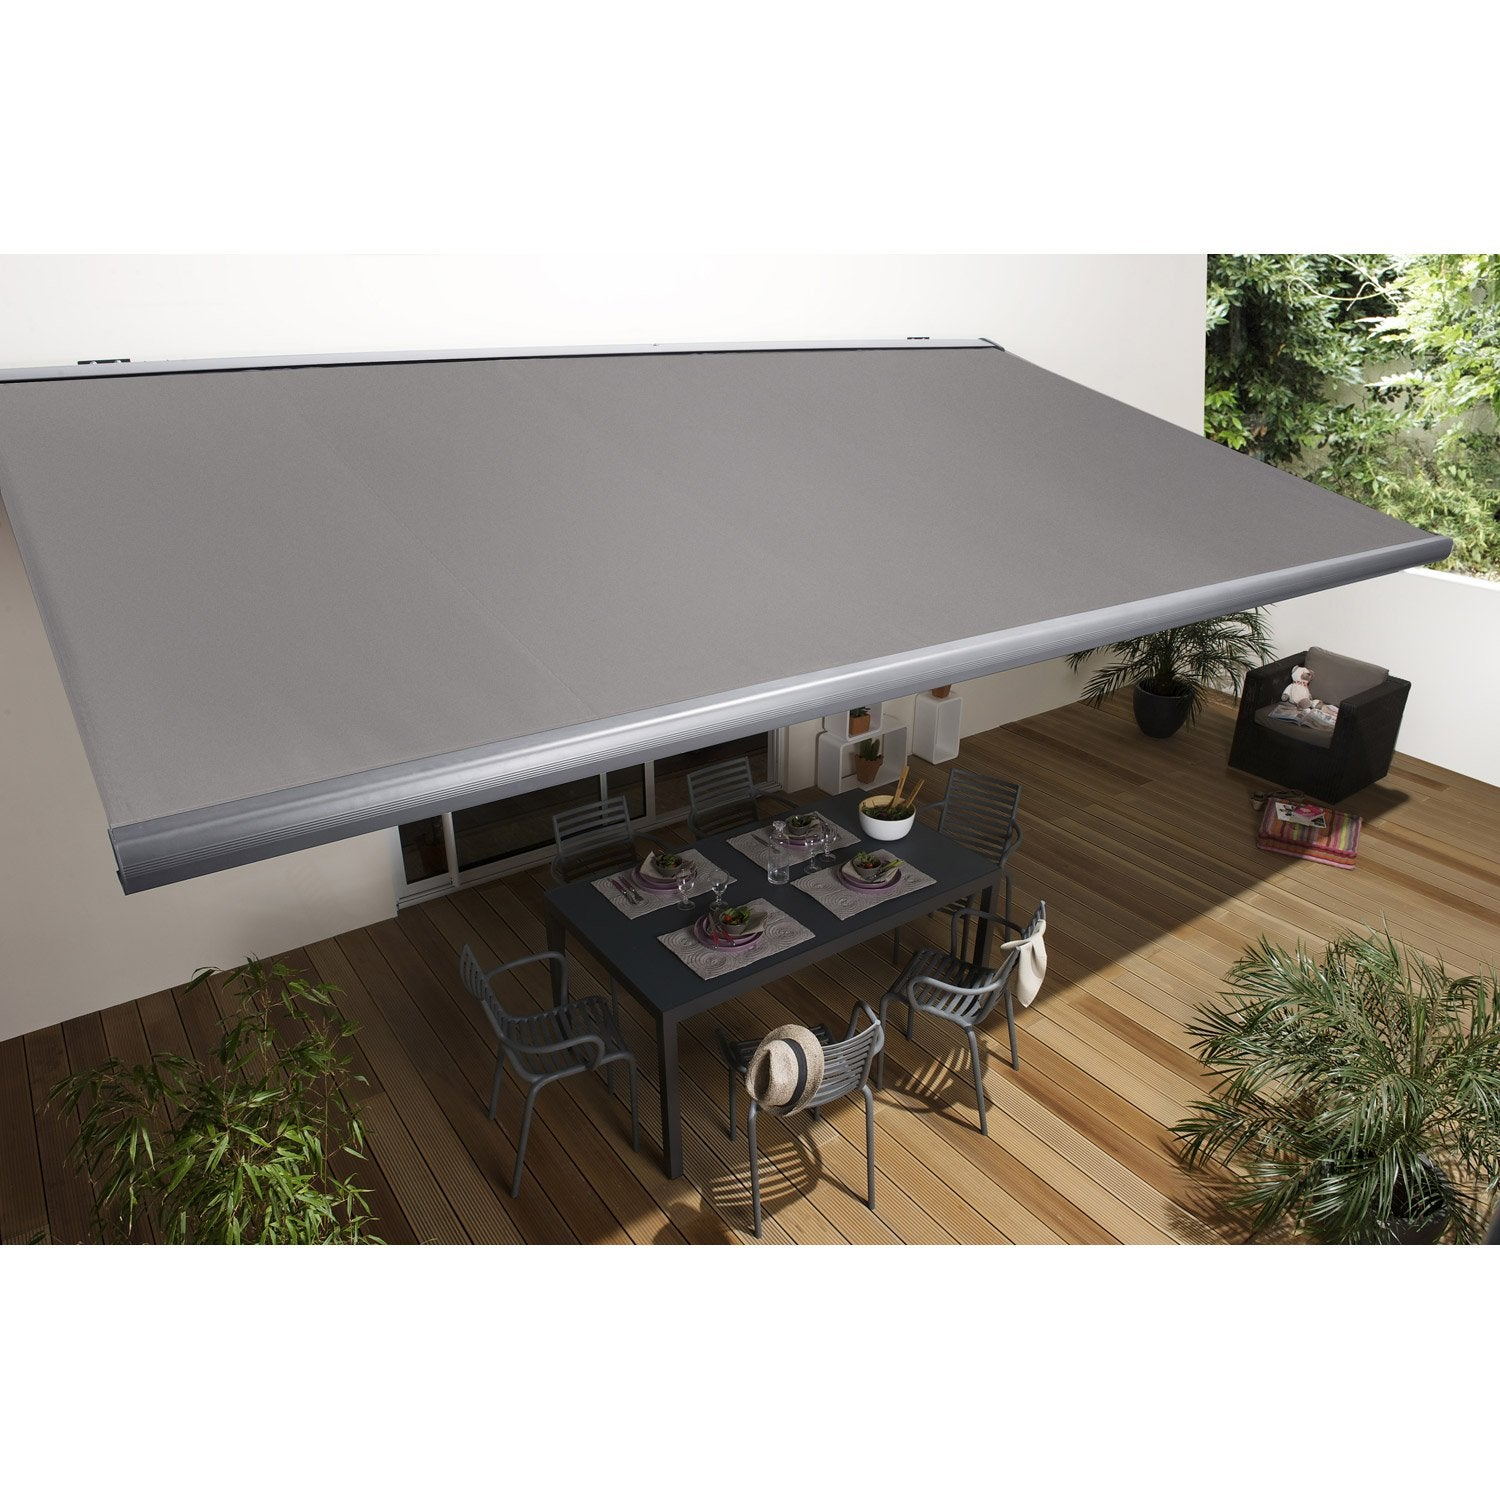 Store banne motoris gold coffre int gral 6 x 3 5 m t122 for Store exterieur electrique